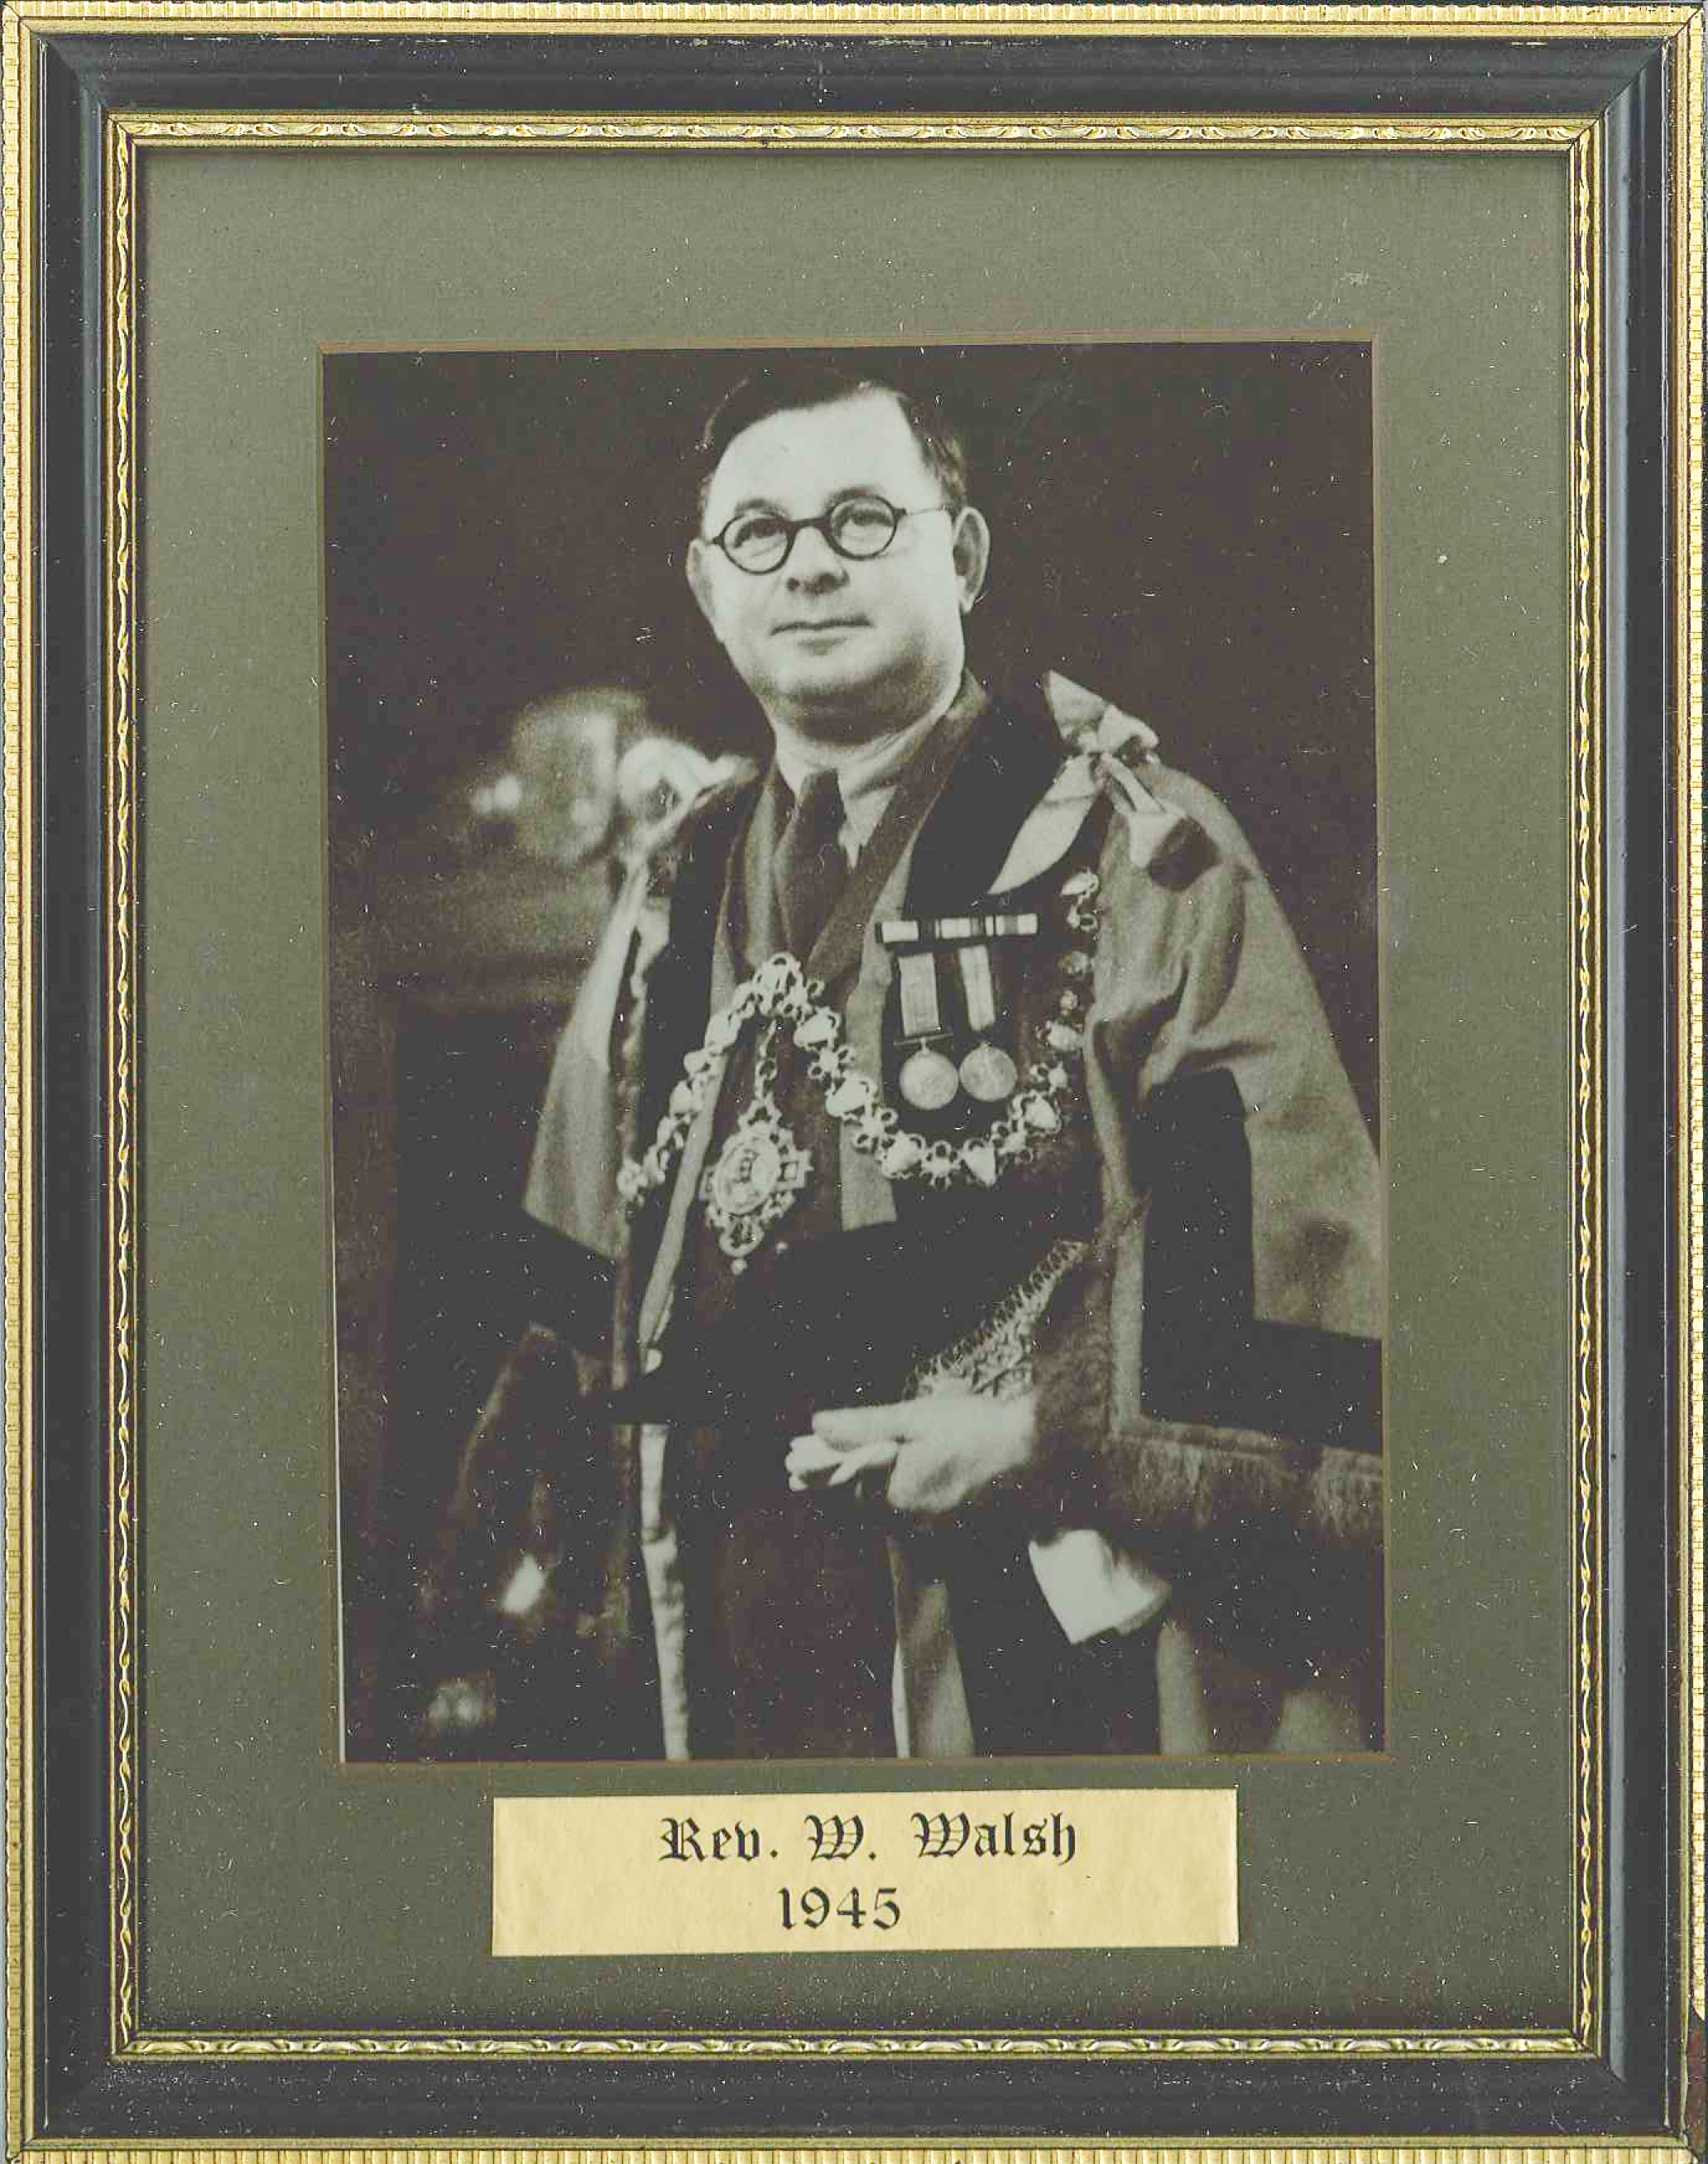 Image of /Rev. W. Walsh